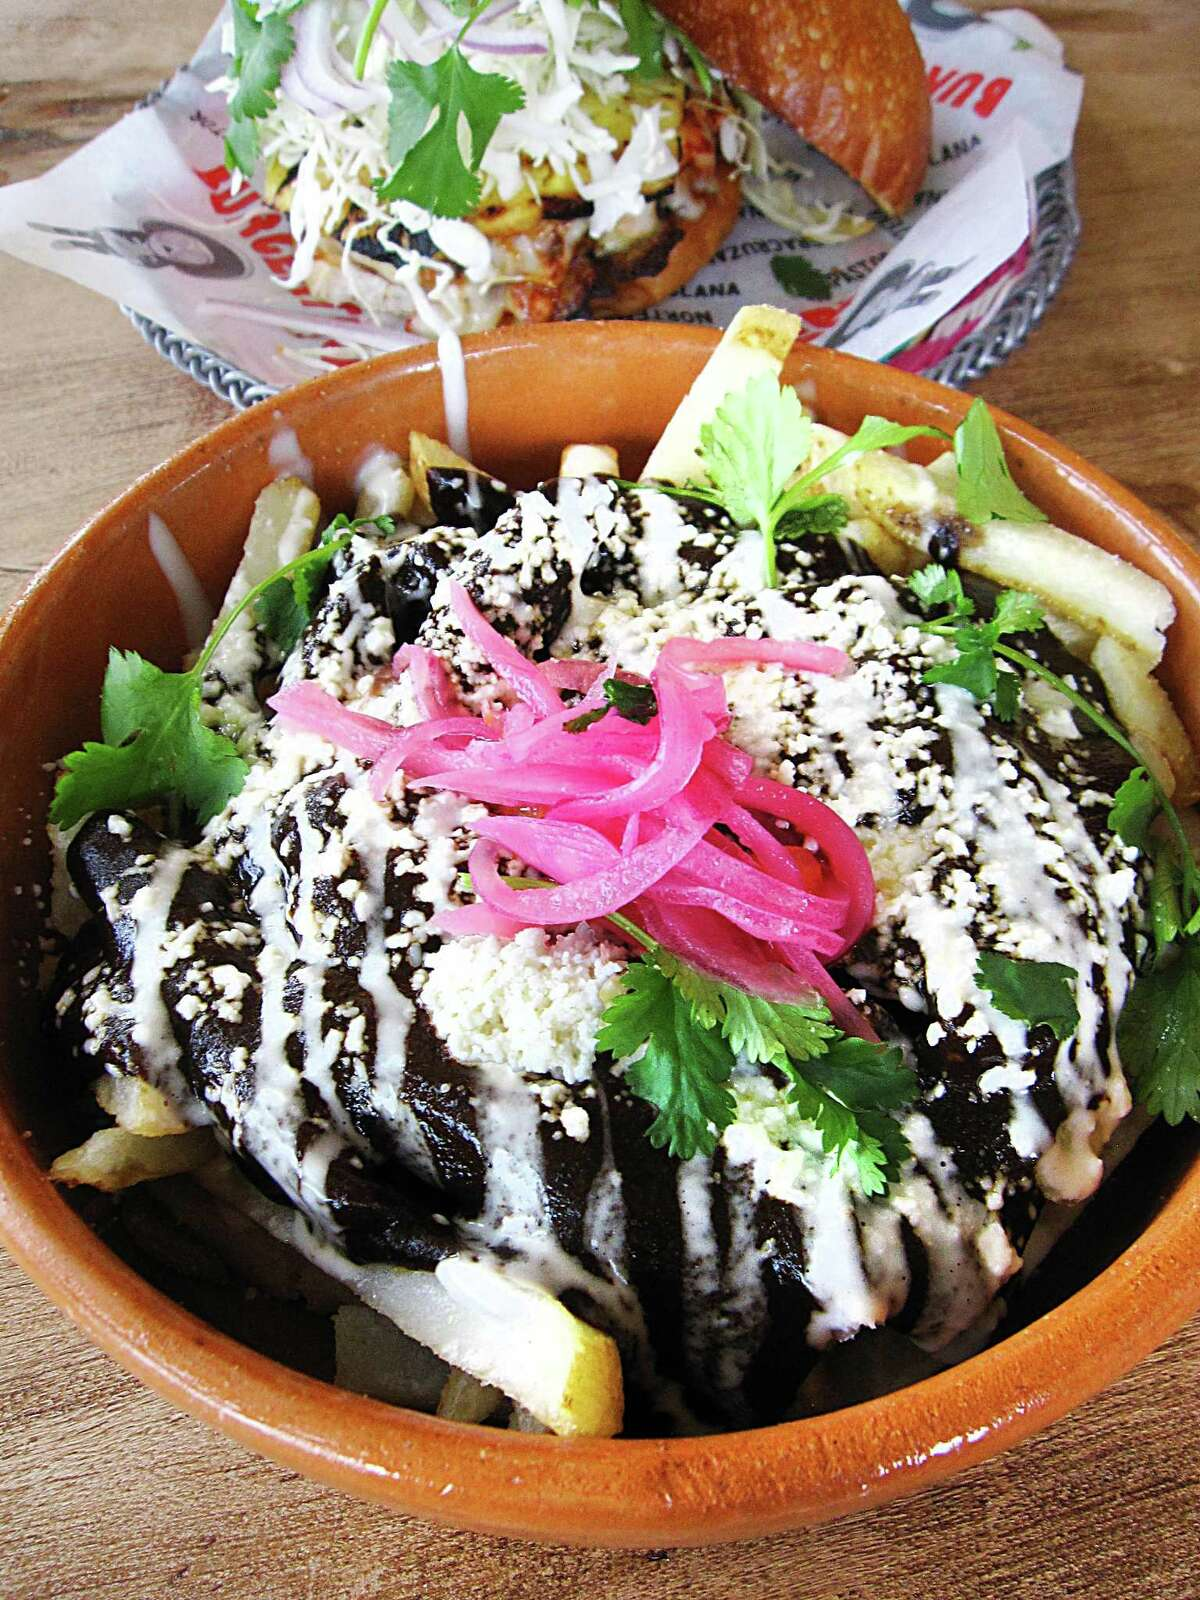 Mole fries with queso fresco and pickled onions and an al pastor burger from Burgerteca.